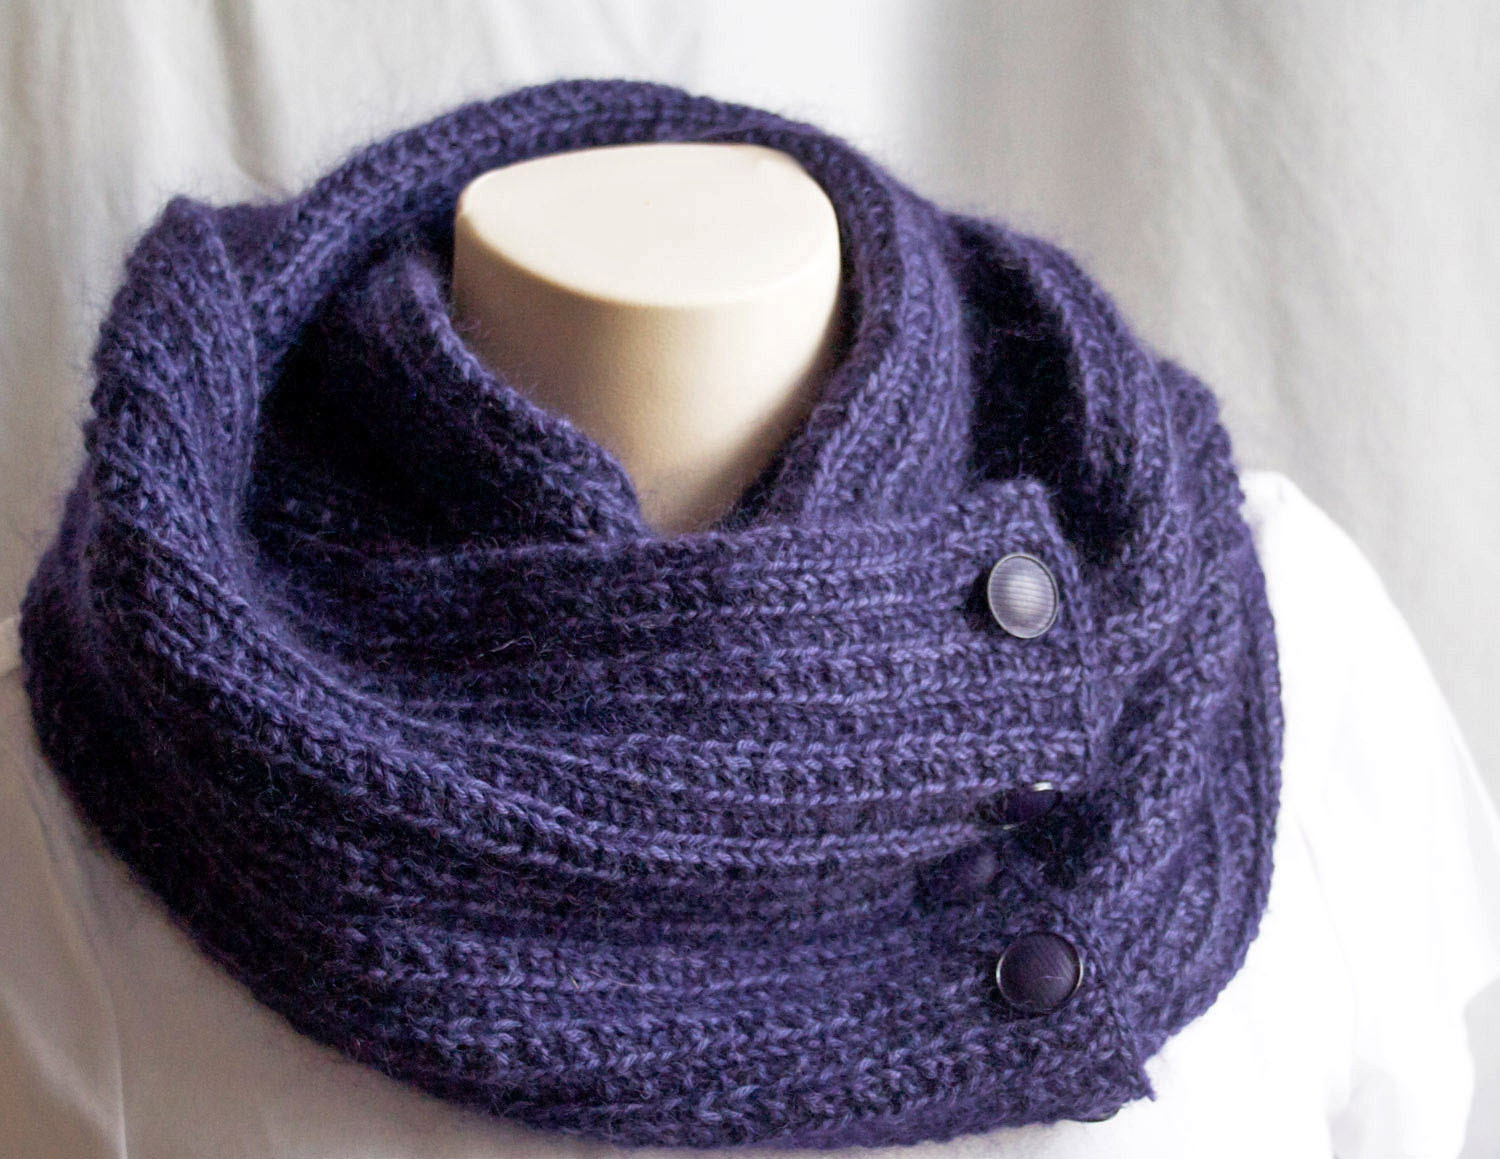 Knitting Scarf Patterns Infinity Scarf : Knitting pattern scarf. cowl. knit